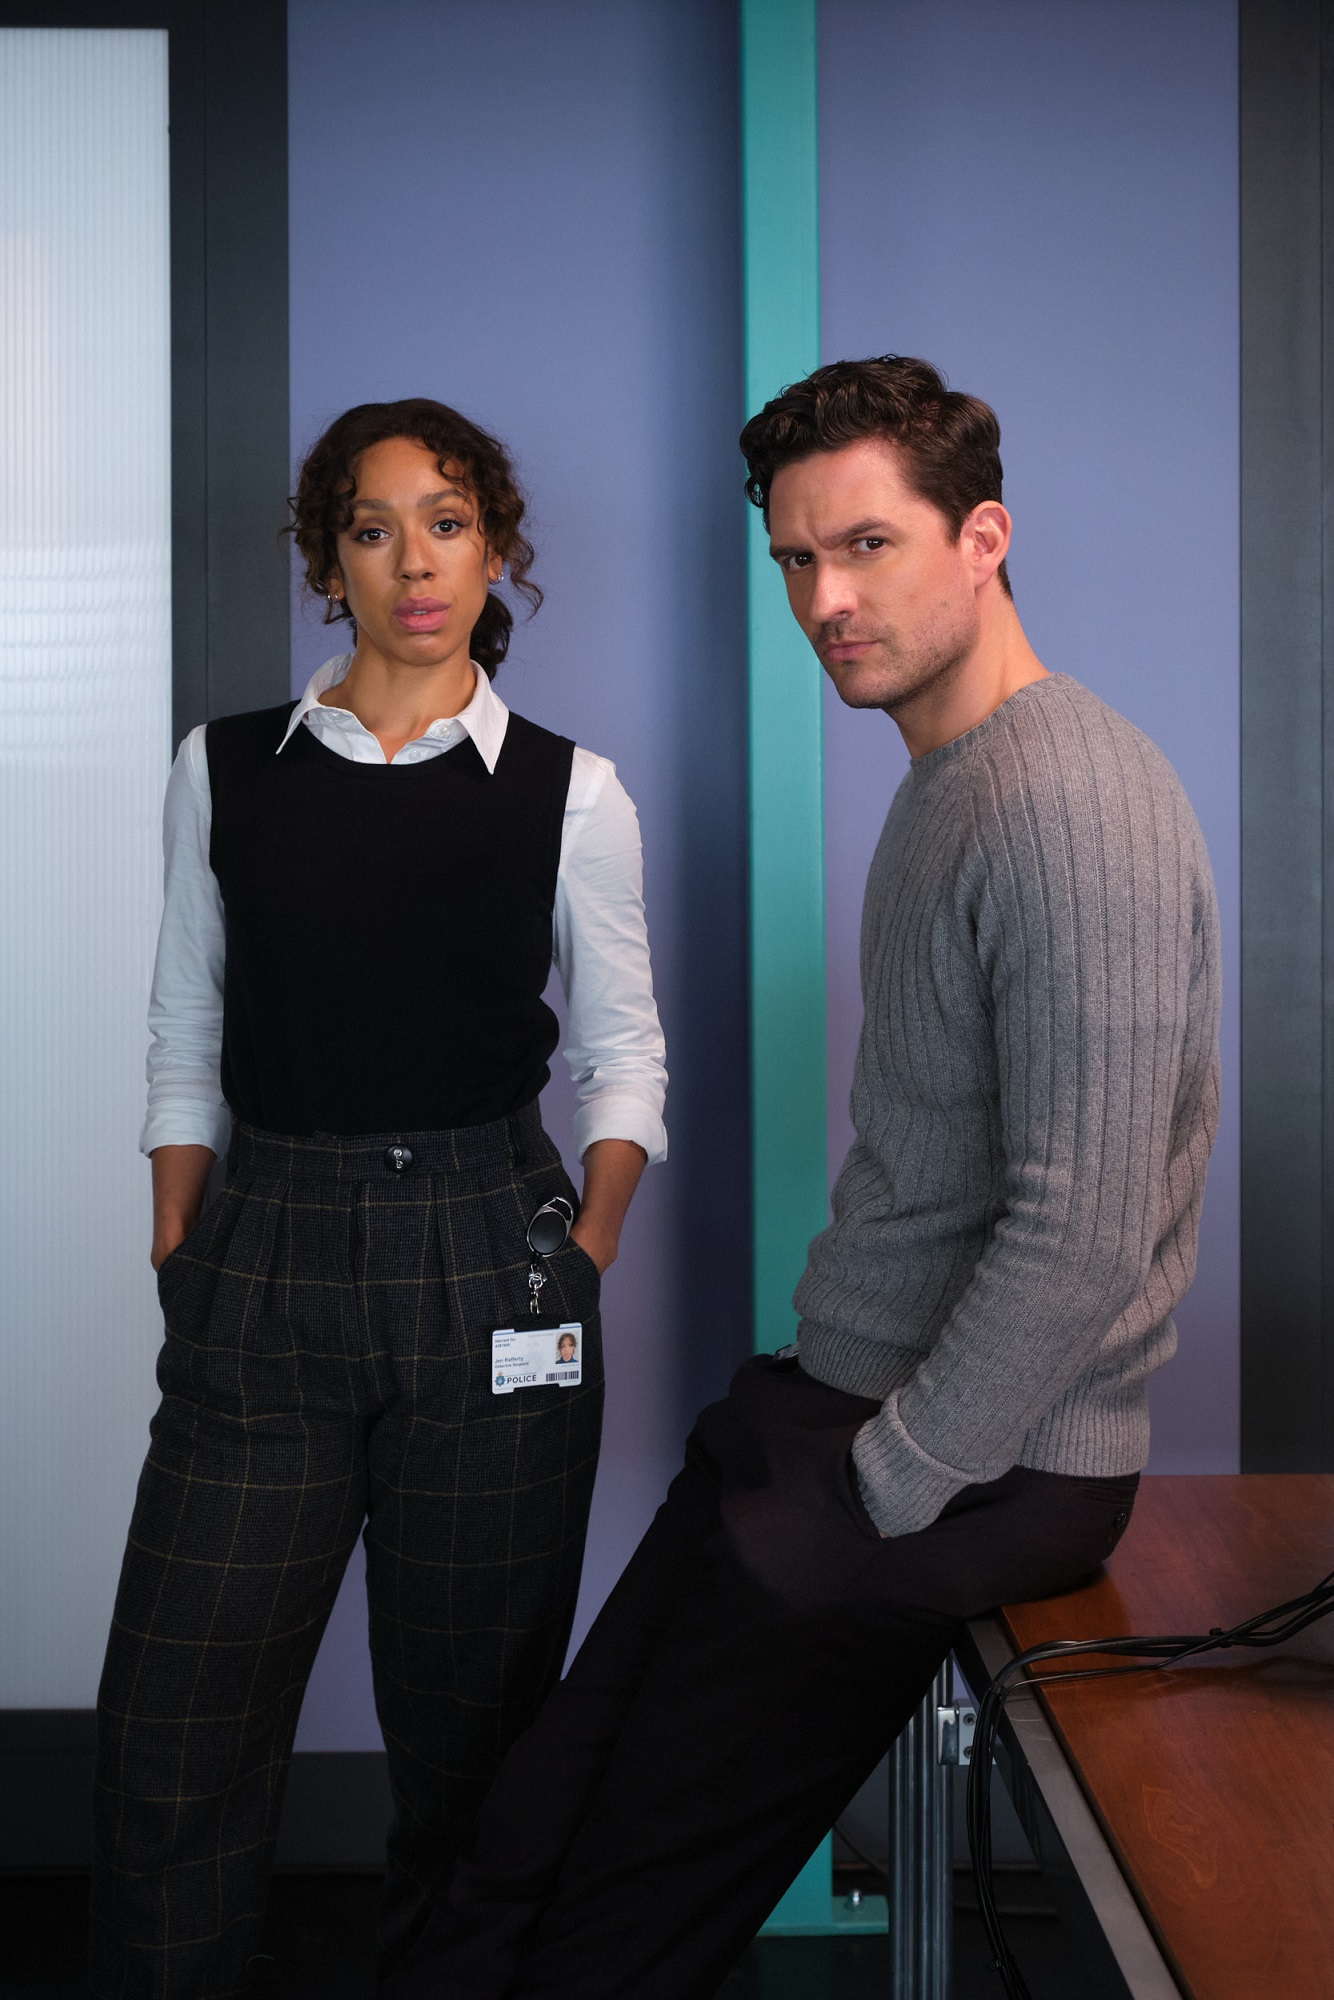 First look - Pearl Mackie & Ben Aldridge in The Long Call - image courtesy ITV